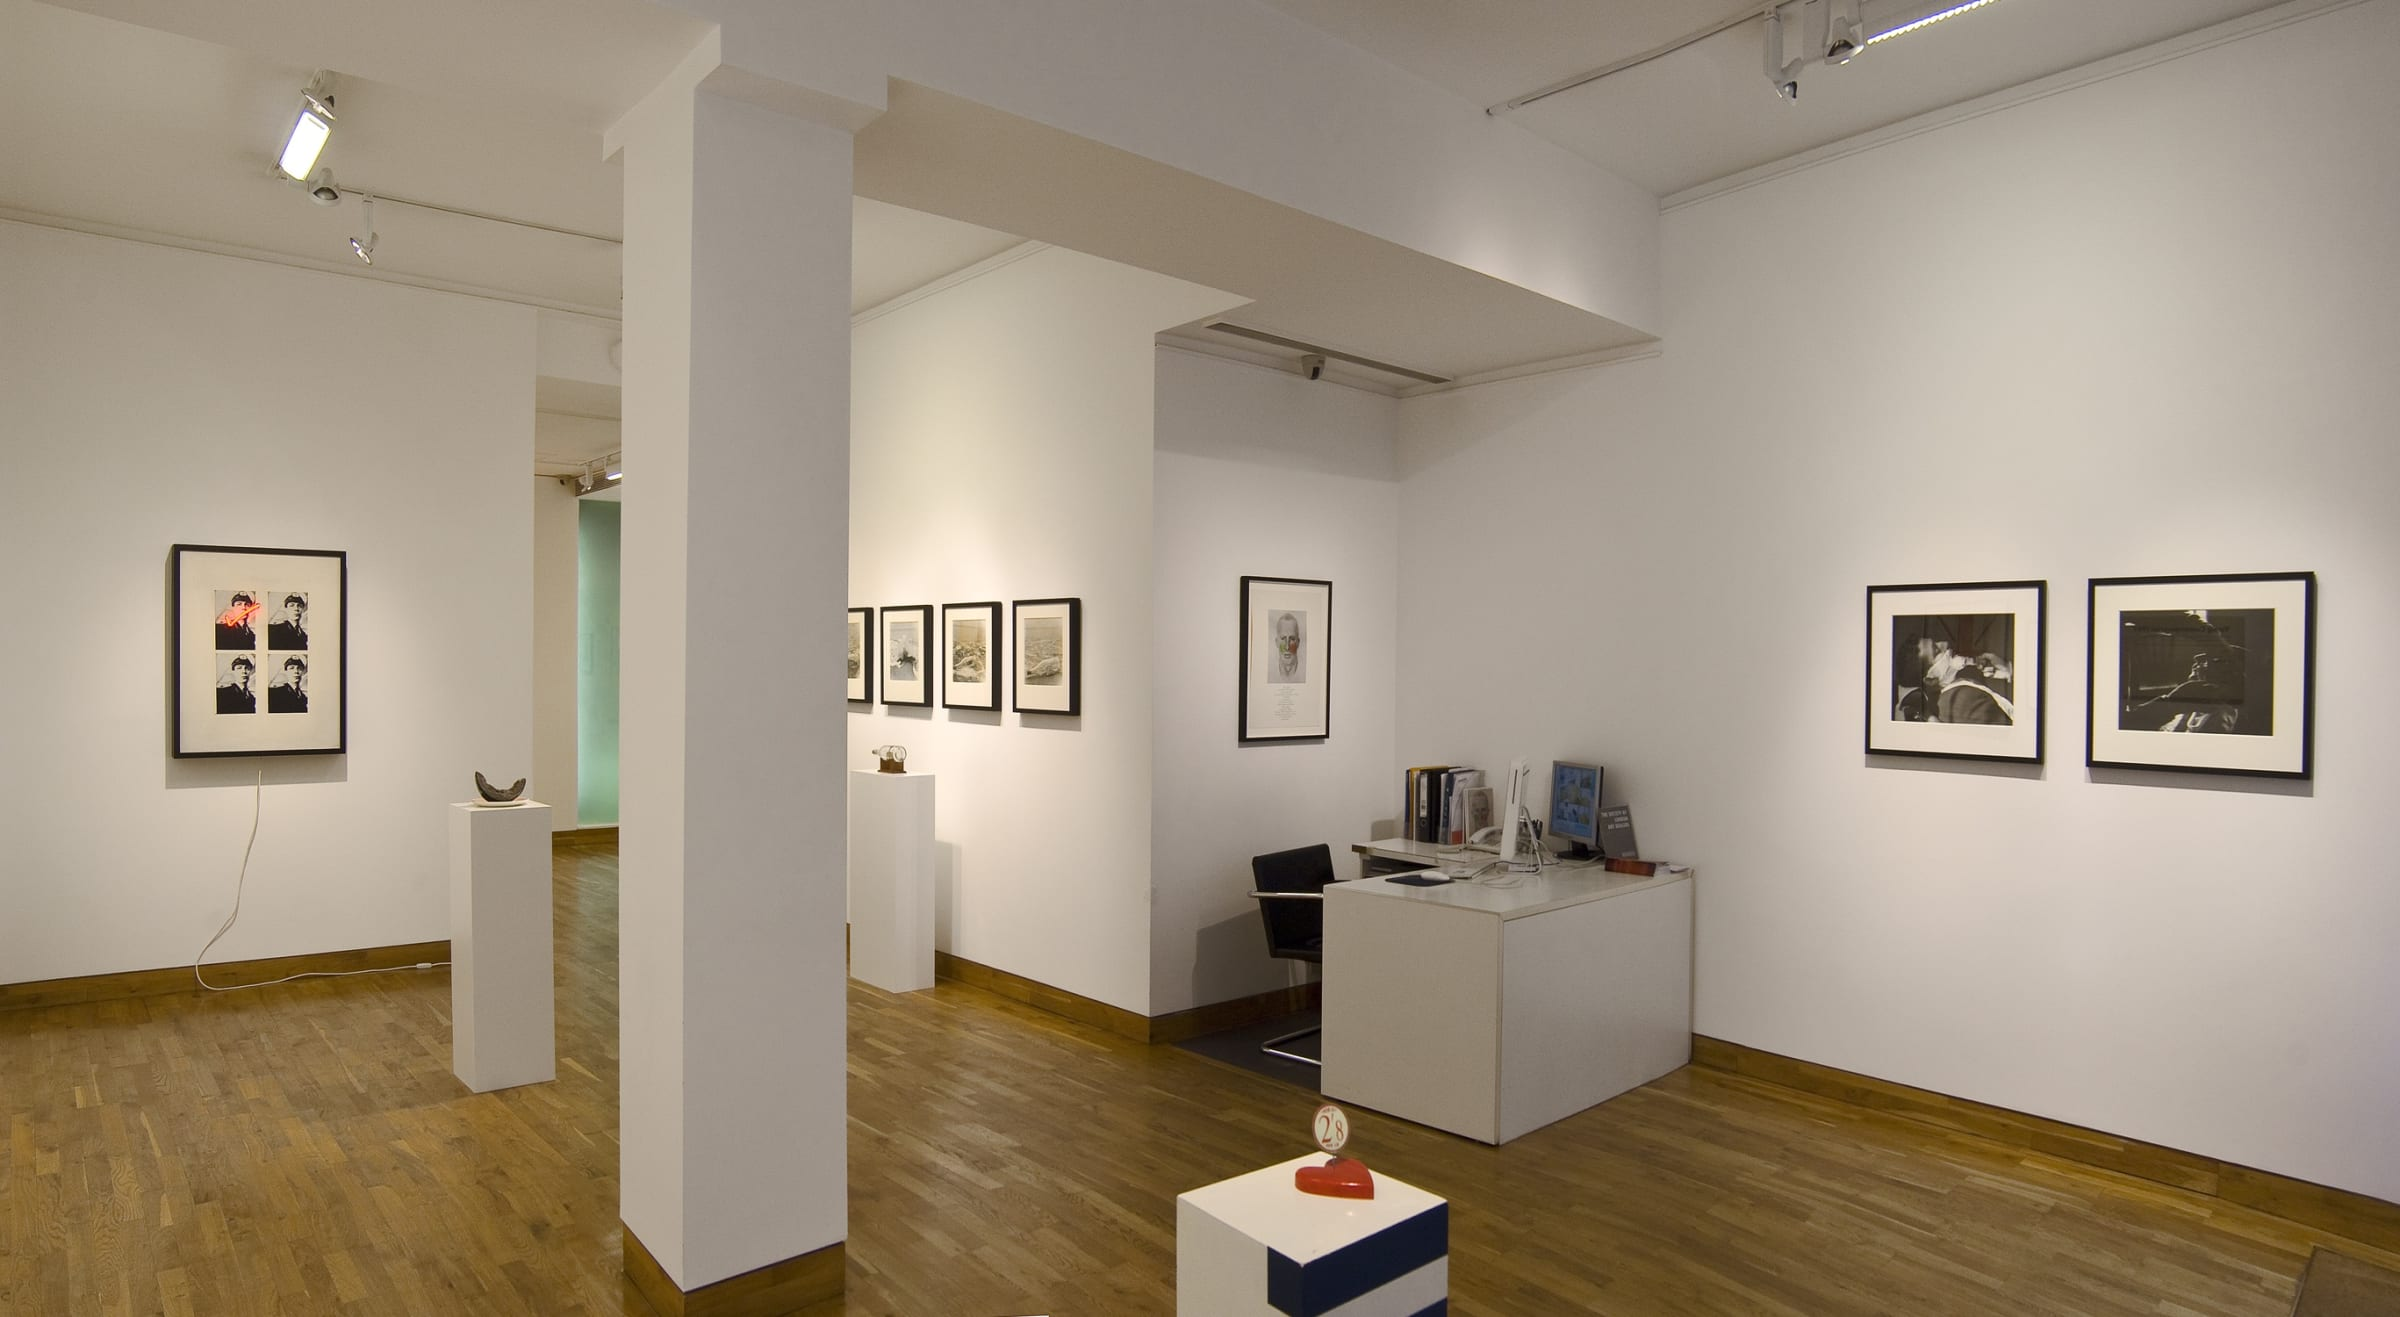 """<span class=""""link fancybox-details-link""""><a href=""""/exhibitions/83/works/image_standalone253/"""">View Detail Page</a></span><p>BILLY APPLE   BRITISH & AMERICAN WORKS 1960 - 1969   16 SEP - 30 OCT 2010   Installation View</p>"""